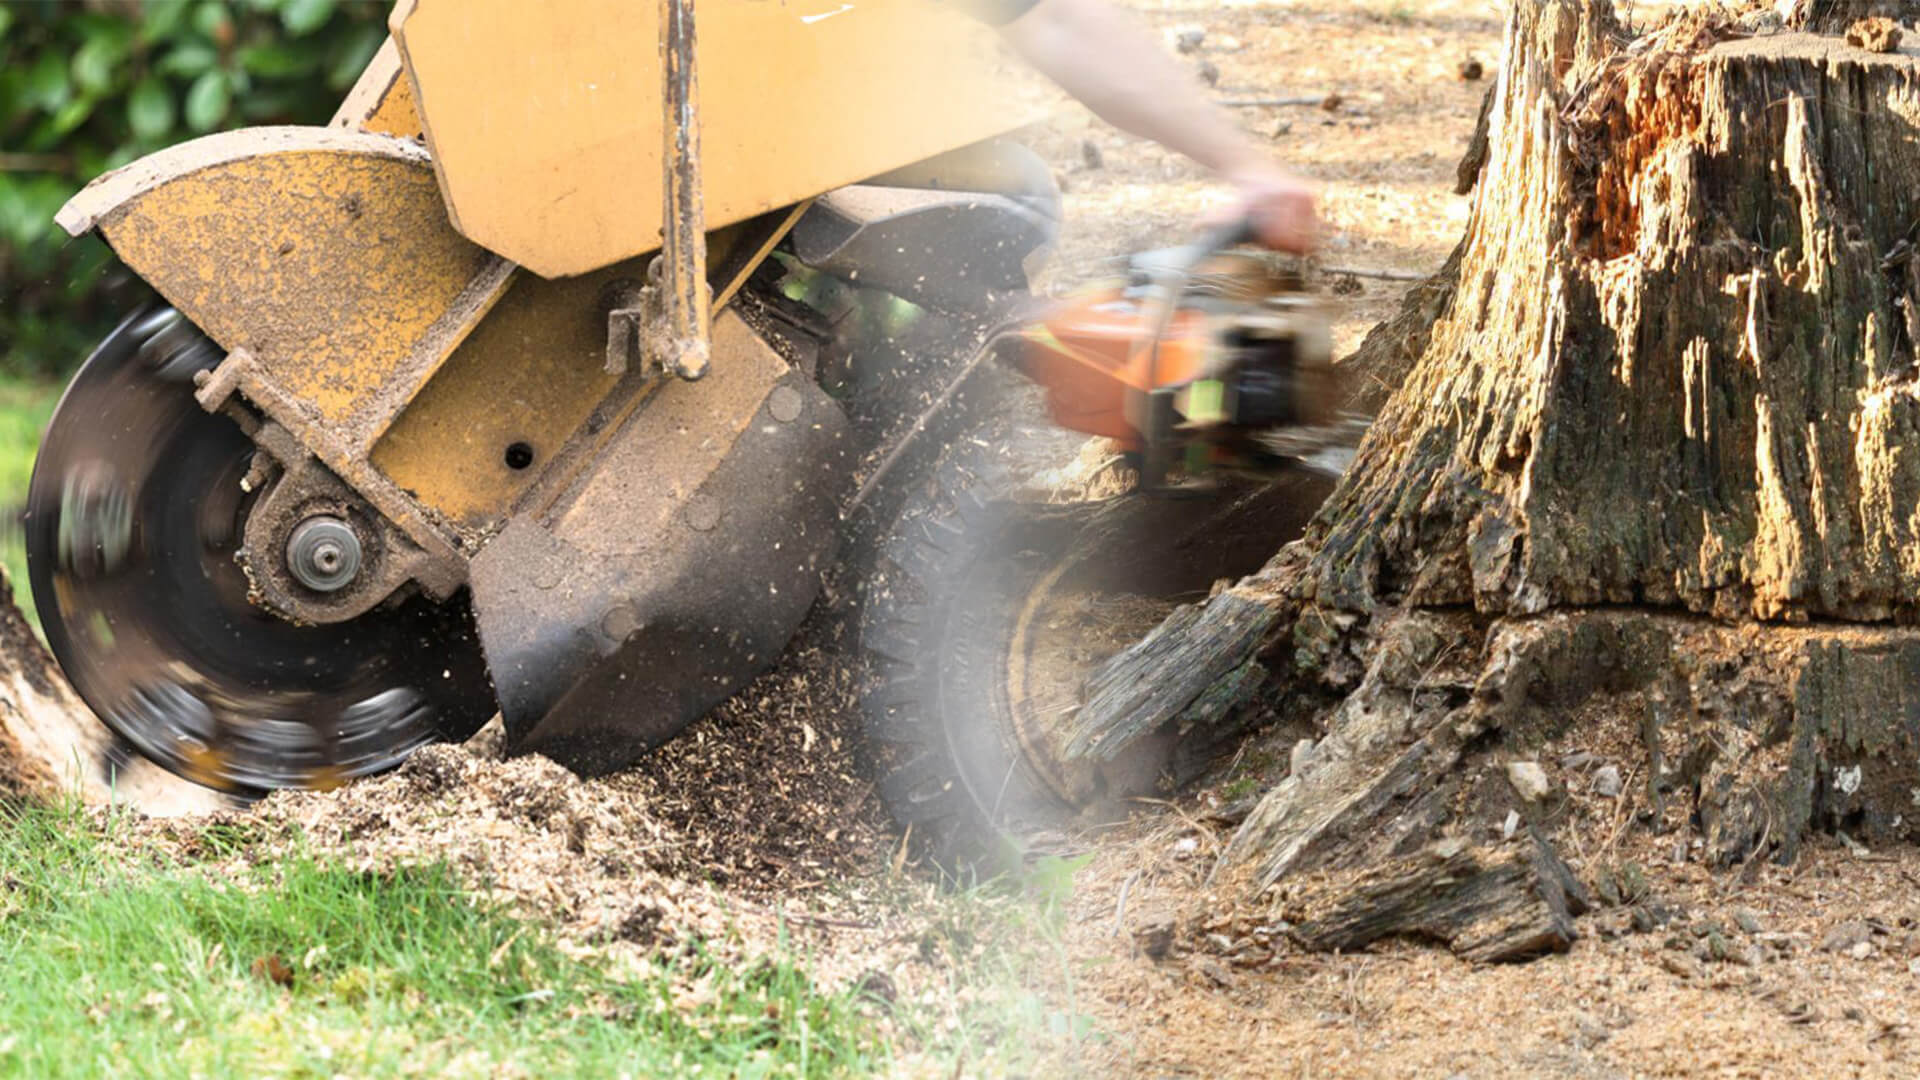 Stump grinding & removal-Dover FL Tree Trimming and Stump Grinding Services-We Offer Tree Trimming Services, Tree Removal, Tree Pruning, Tree Cutting, Residential and Commercial Tree Trimming Services, Storm Damage, Emergency Tree Removal, Land Clearing, Tree Companies, Tree Care Service, Stump Grinding, and we're the Best Tree Trimming Company Near You Guaranteed!